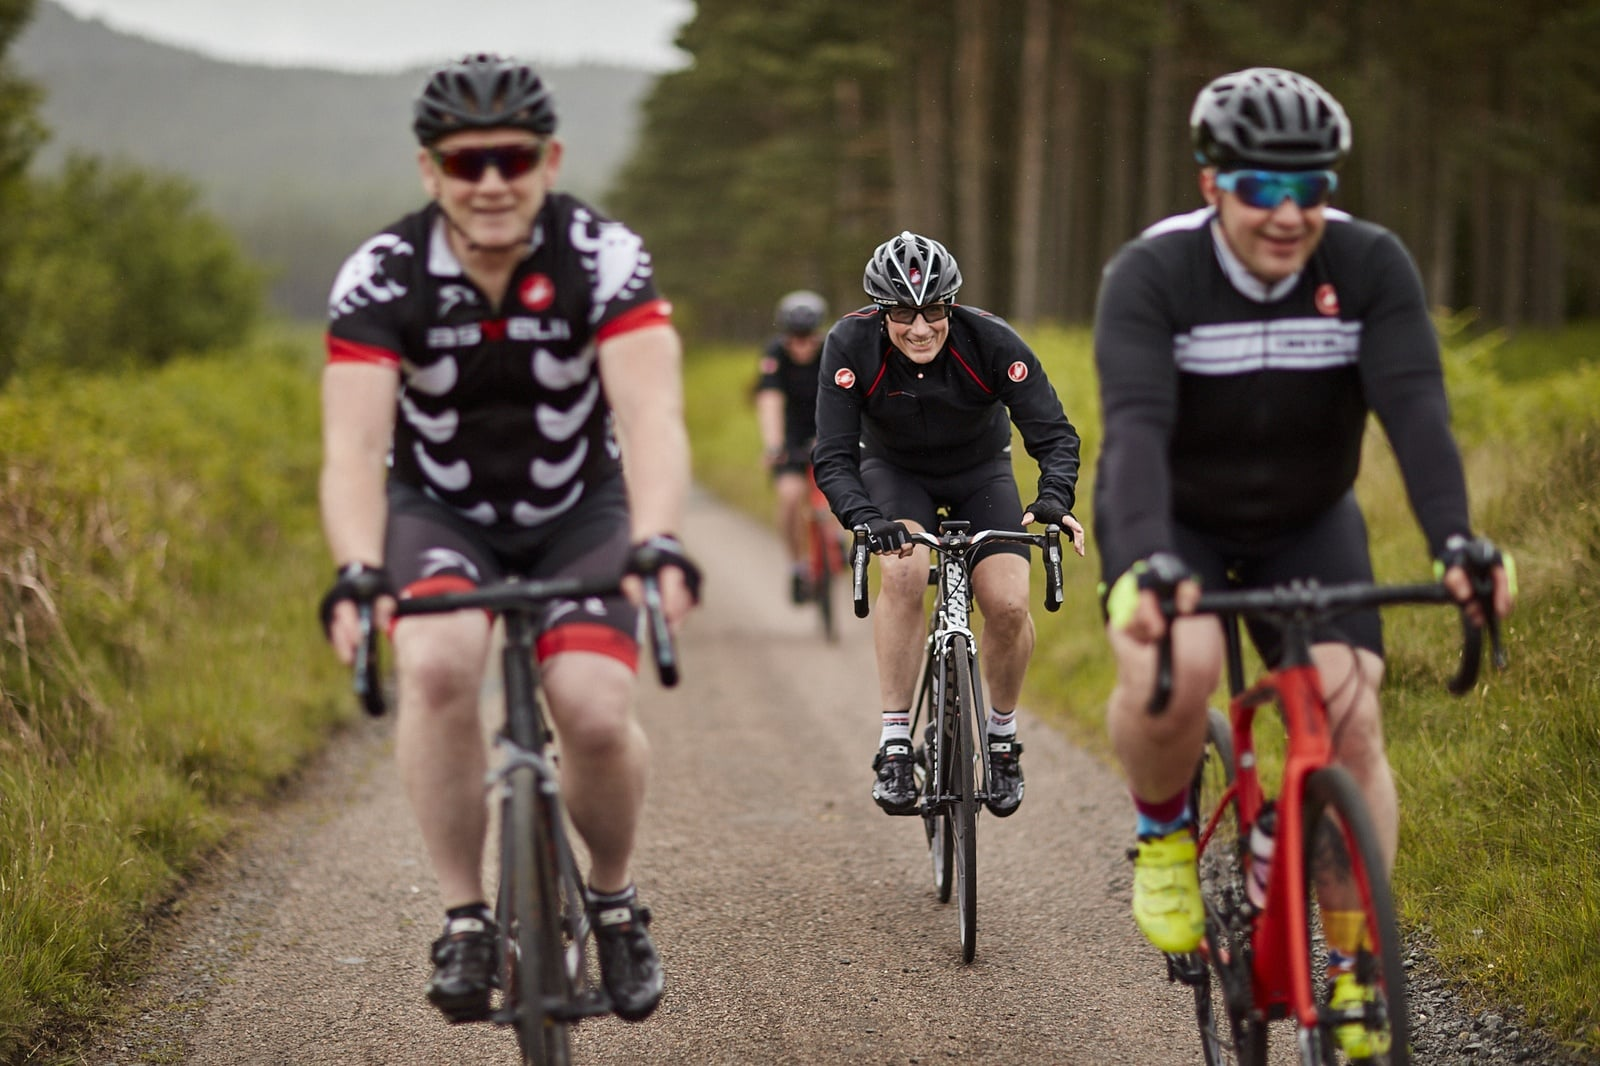 Four men riding road bikes on a road in the National Park